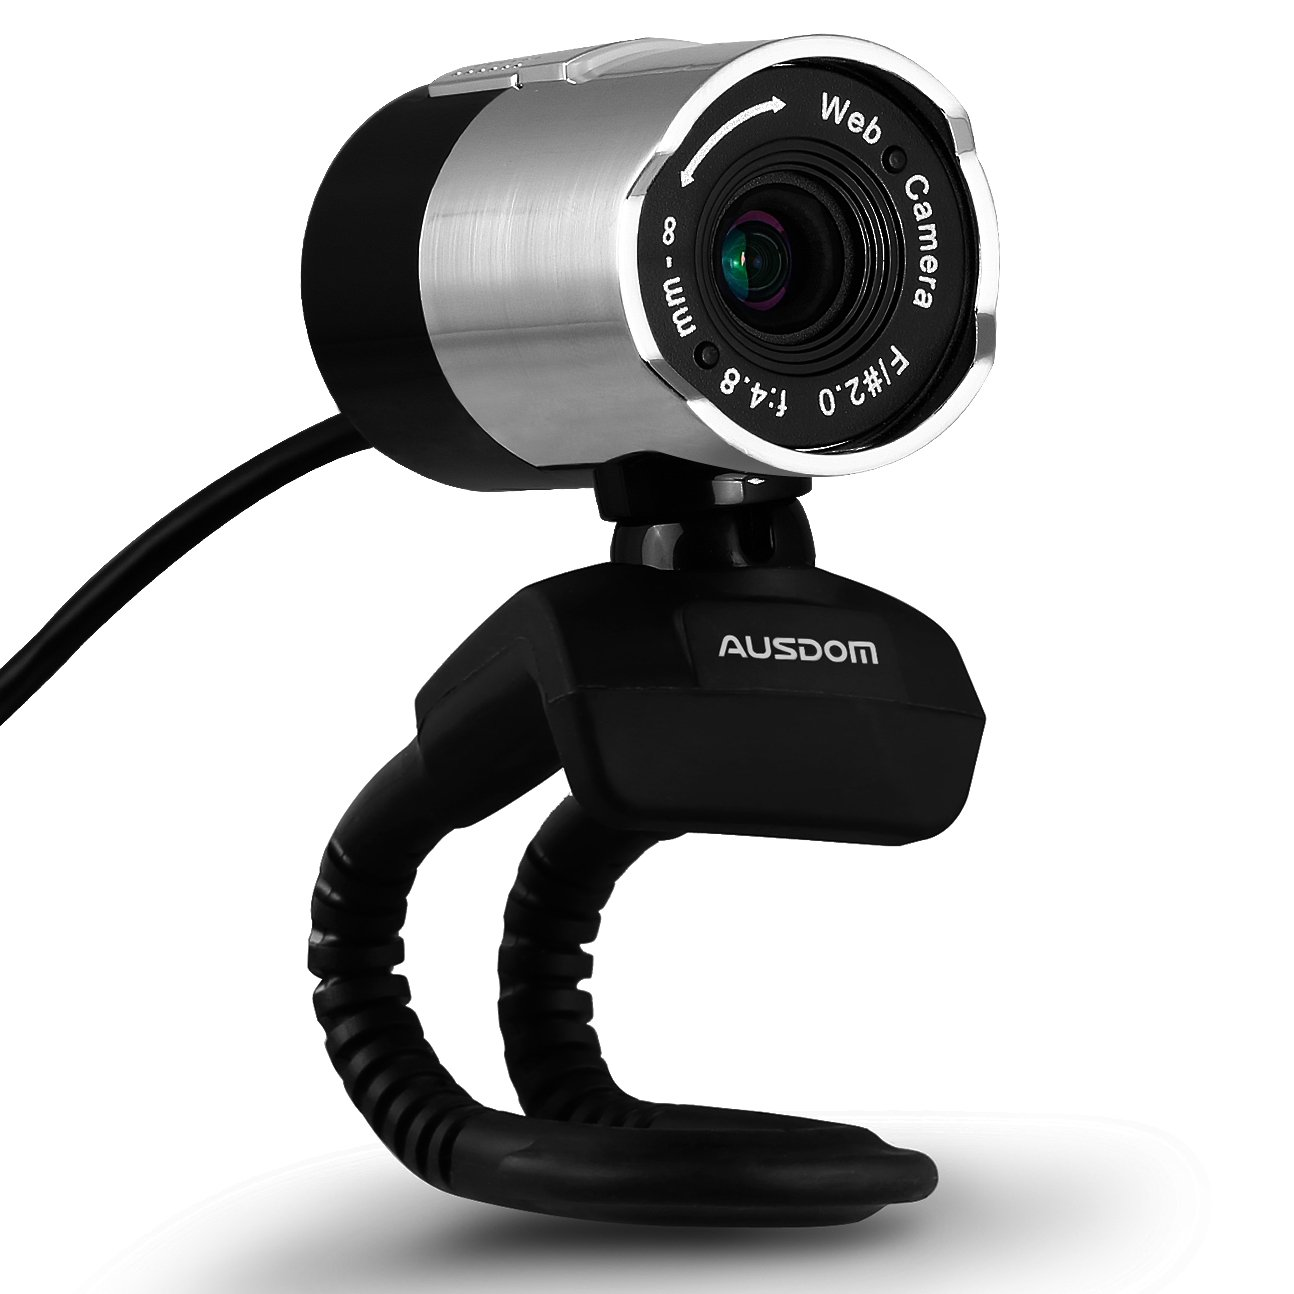 Ausdom Web Camera Full HD Web cam with Microphone Video Calling and Recording for Computer, Laptop and Desktop Plug and Play 360 Degree rotatable Computer Camera for Skype, YouTube